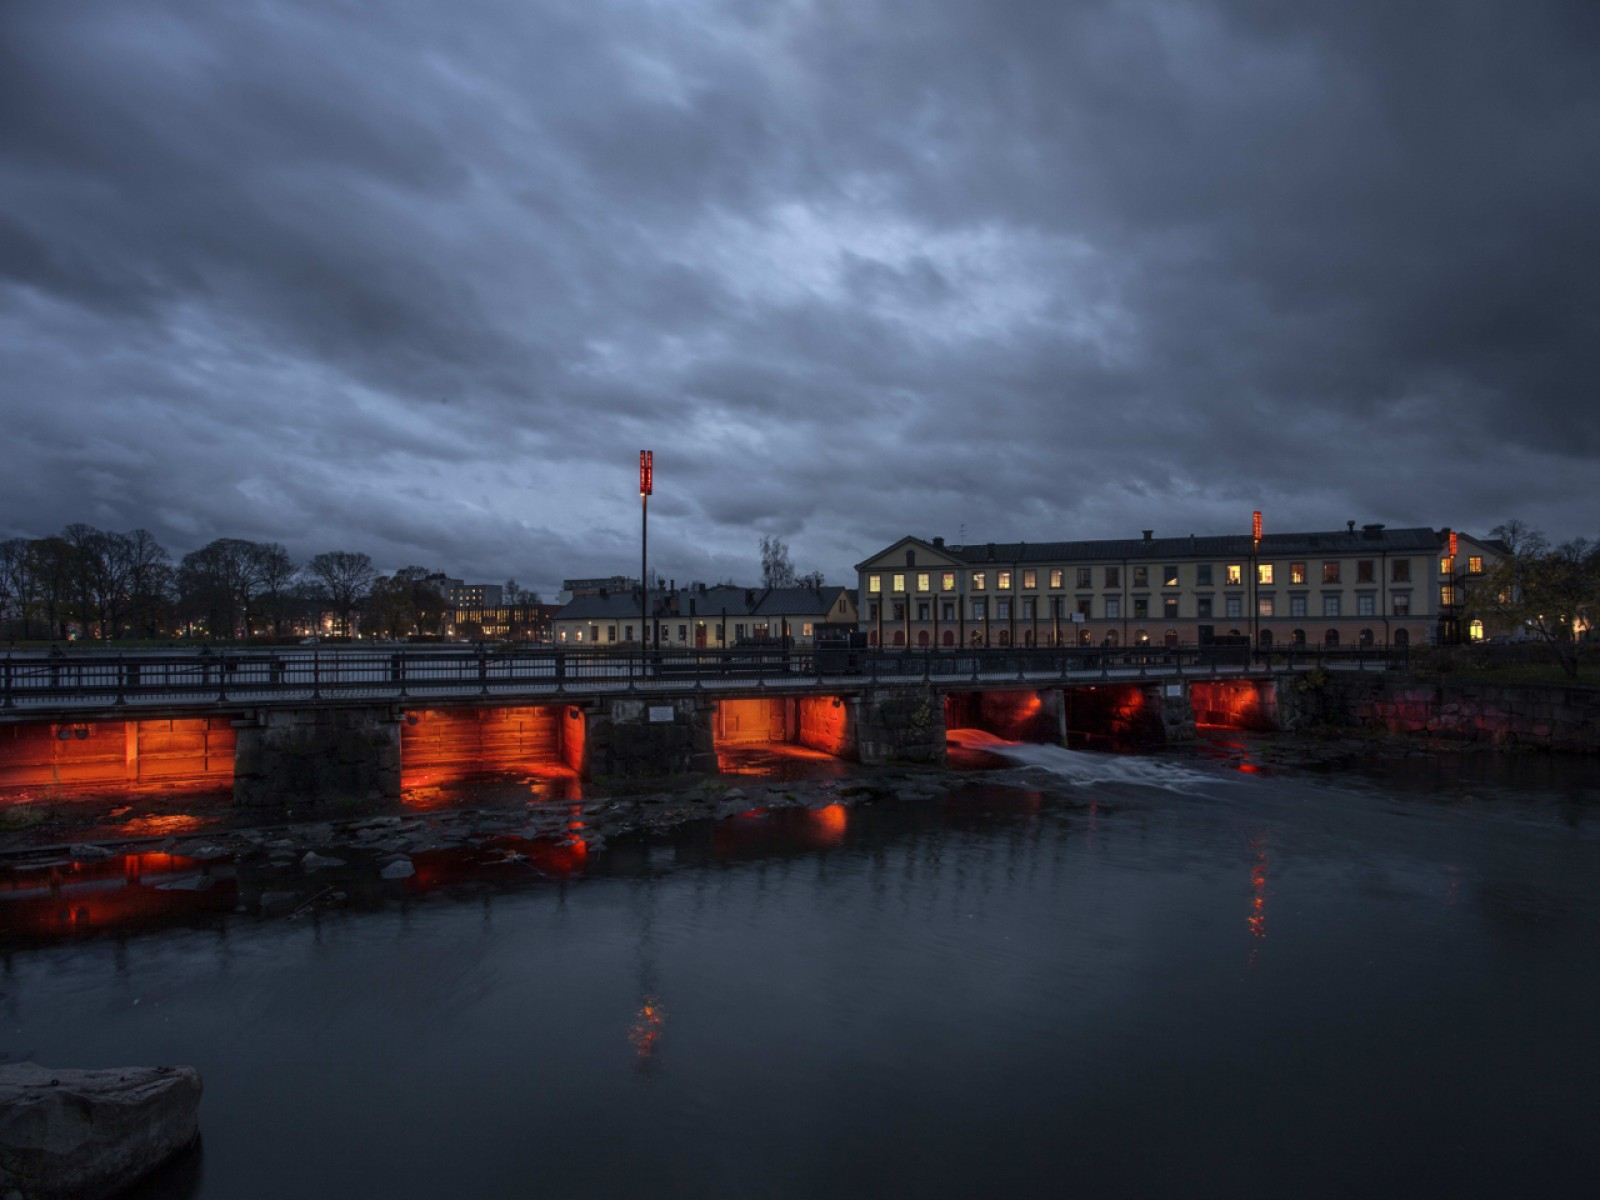 <h1>Faktori bridge</h1><h4>The light under the bridge  symbolizes the blast furnaces and the site-specific special fixture on the bridge illustrates the charred iron glowing. Stockholm Lighting has supplied dynamic fixtures from Lumen Pulse and control systems from Pharos to the sp</h4>